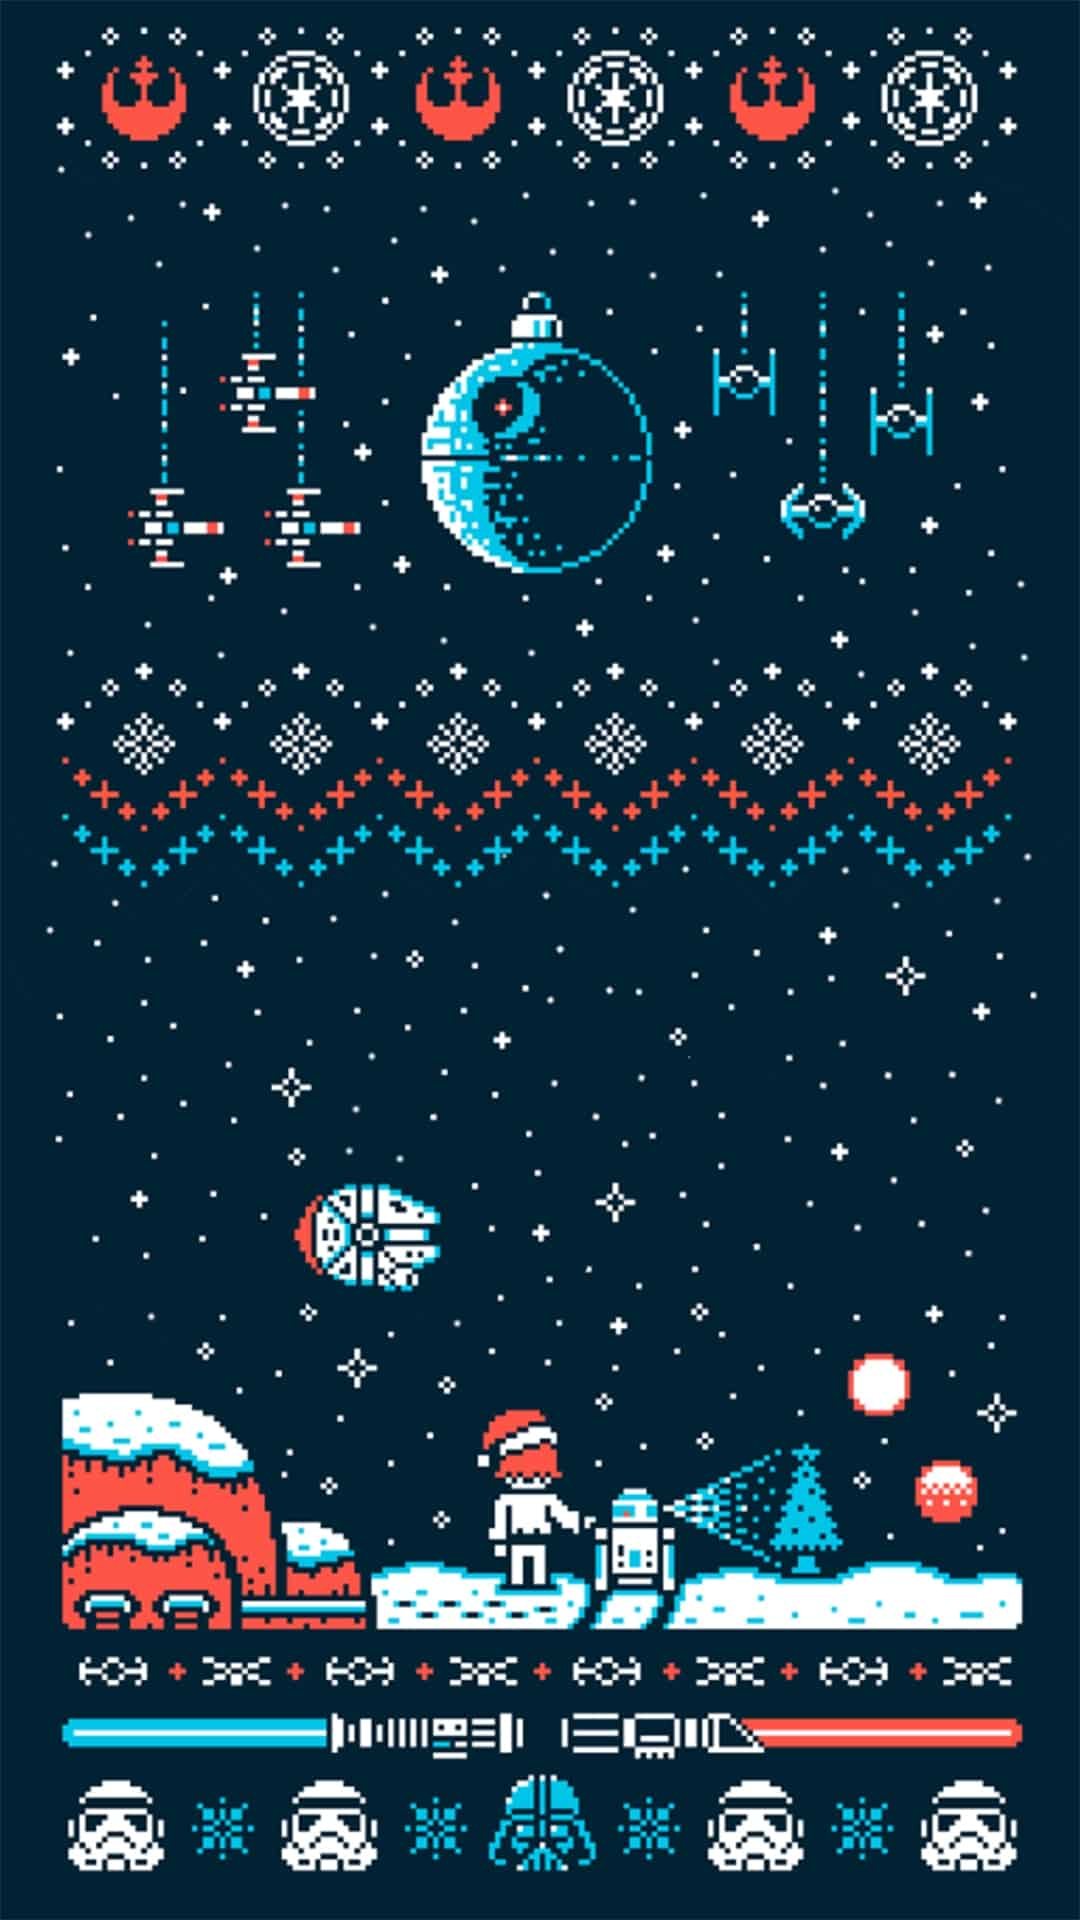 25 Christmas Wallpapers for iPhone – Cute and Vintage Backgrounds. Download a collection of free